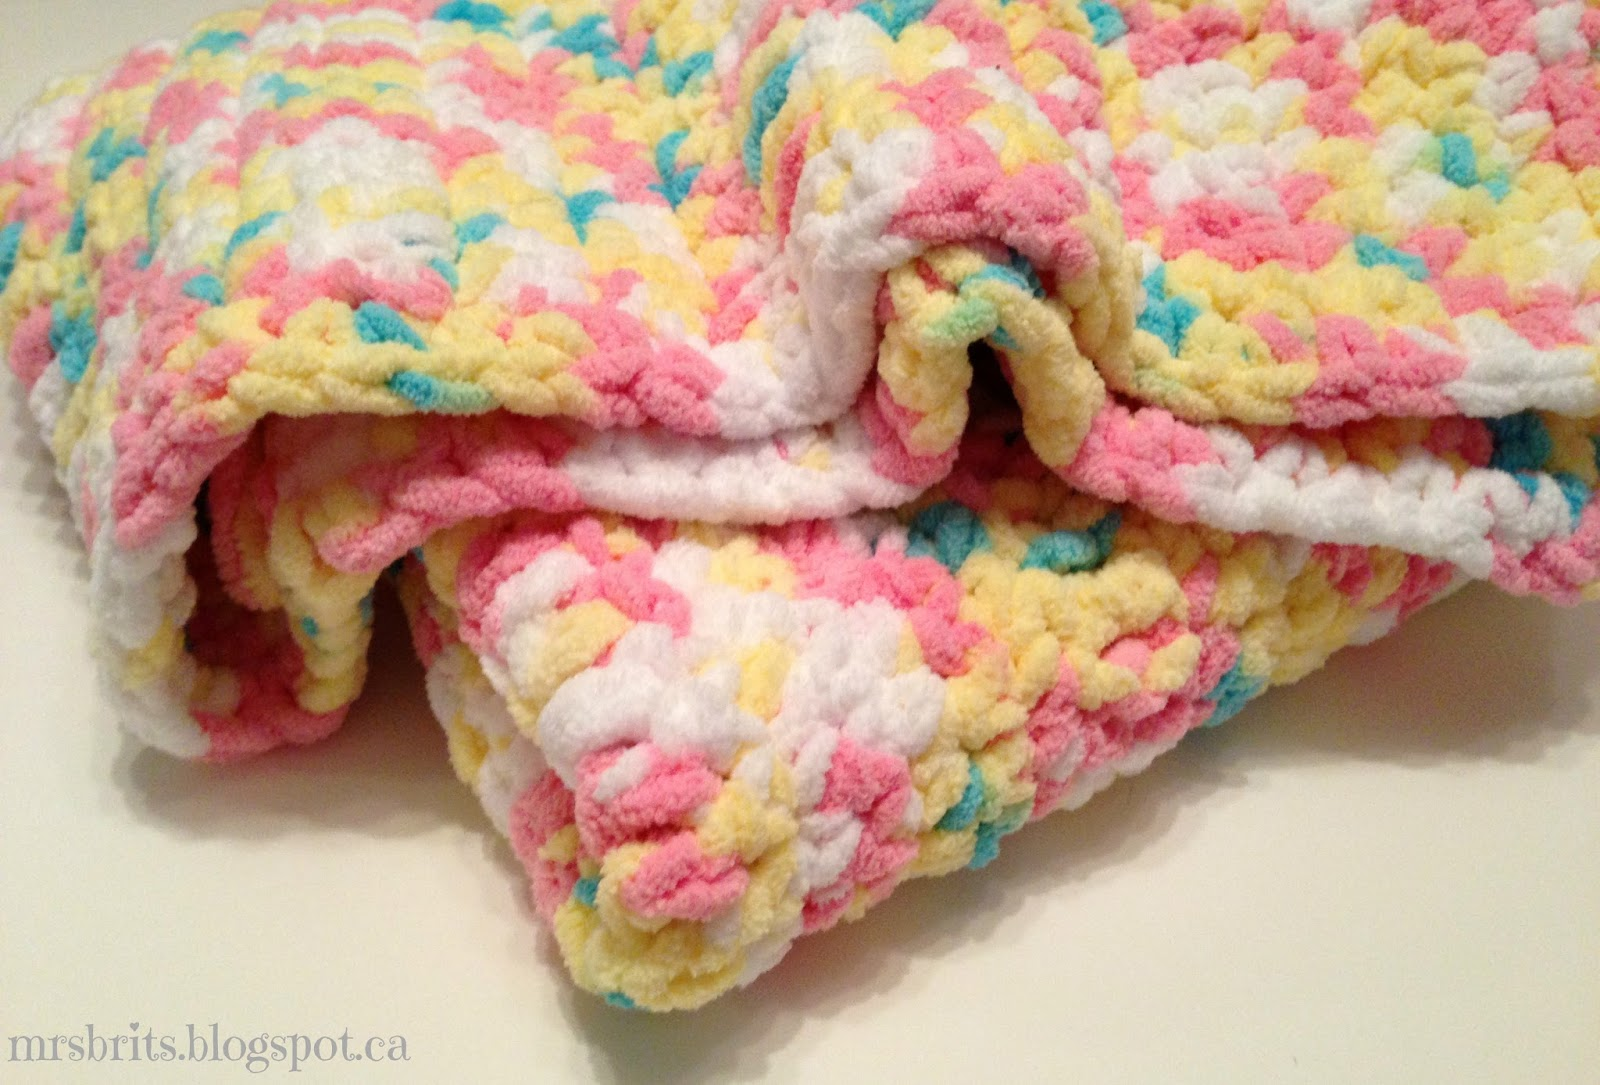 Crochet Patterns For Bernat Blanket Yarn : MrsBrits: Sweet and Chunky Baby Afghan {Crochet Pattern}